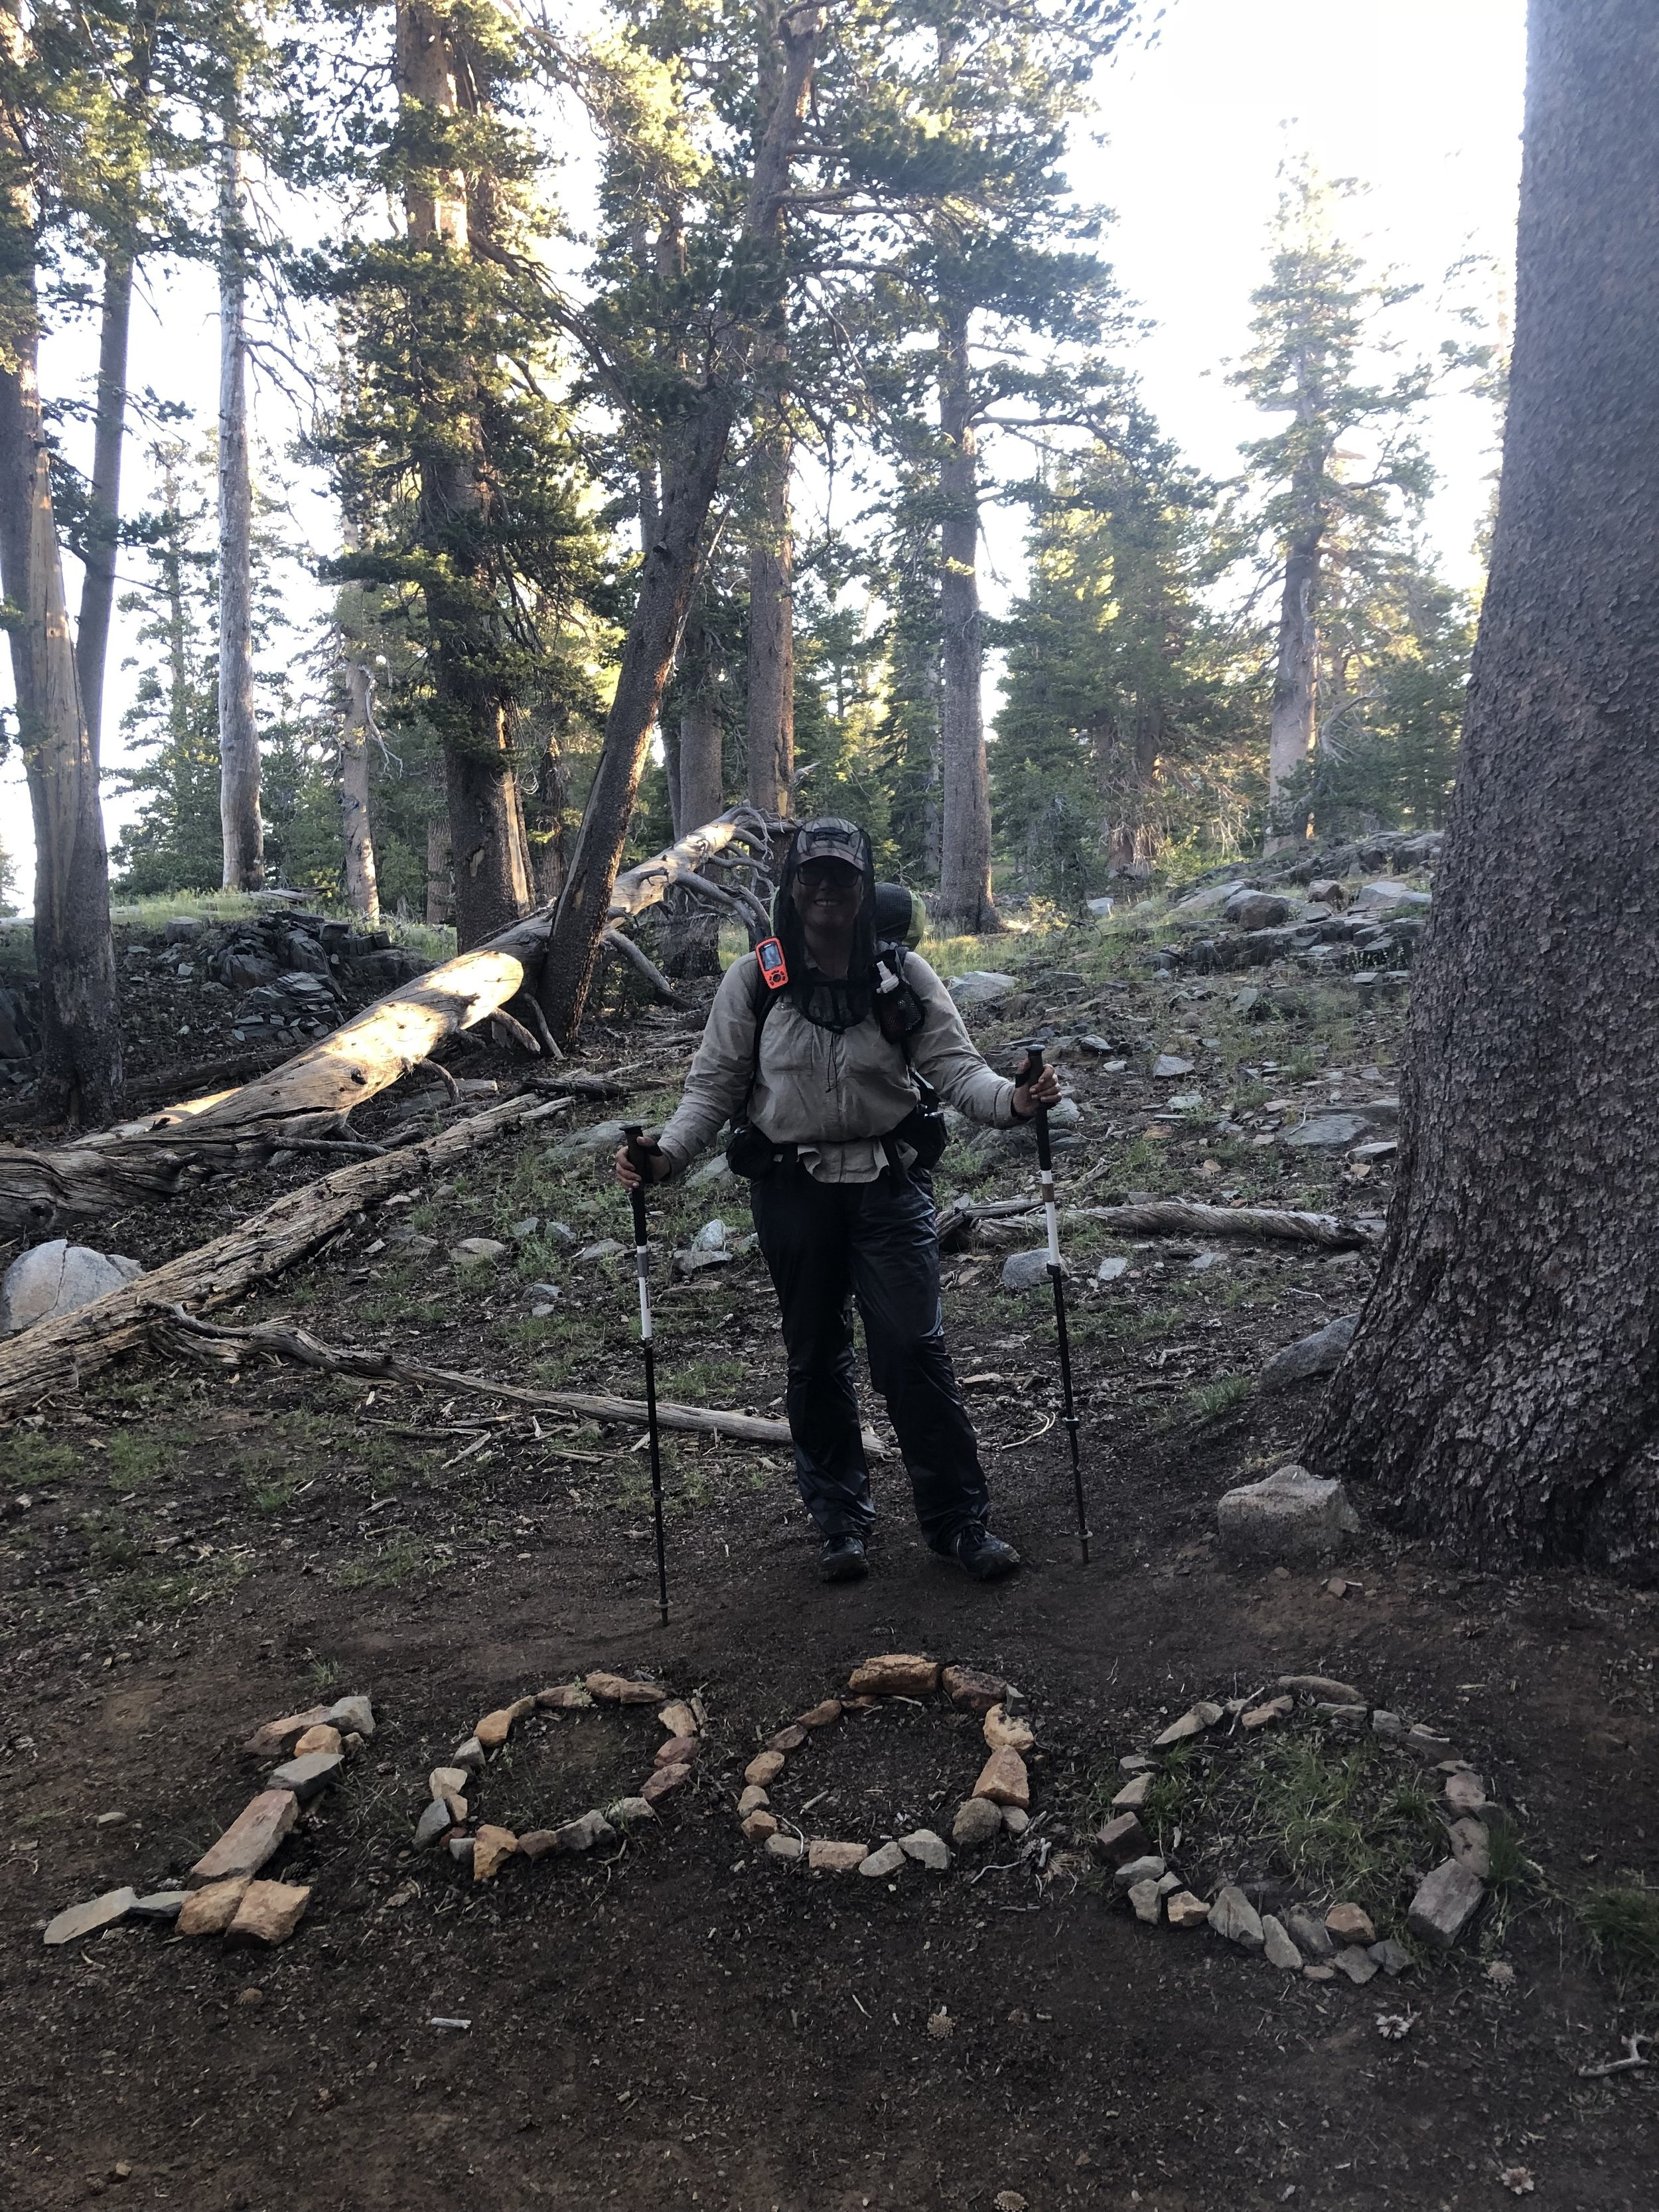 When bugs are terrible: Loose, long pants (wind pants here), long sleeves, and a headnet are helpful (Sierra)